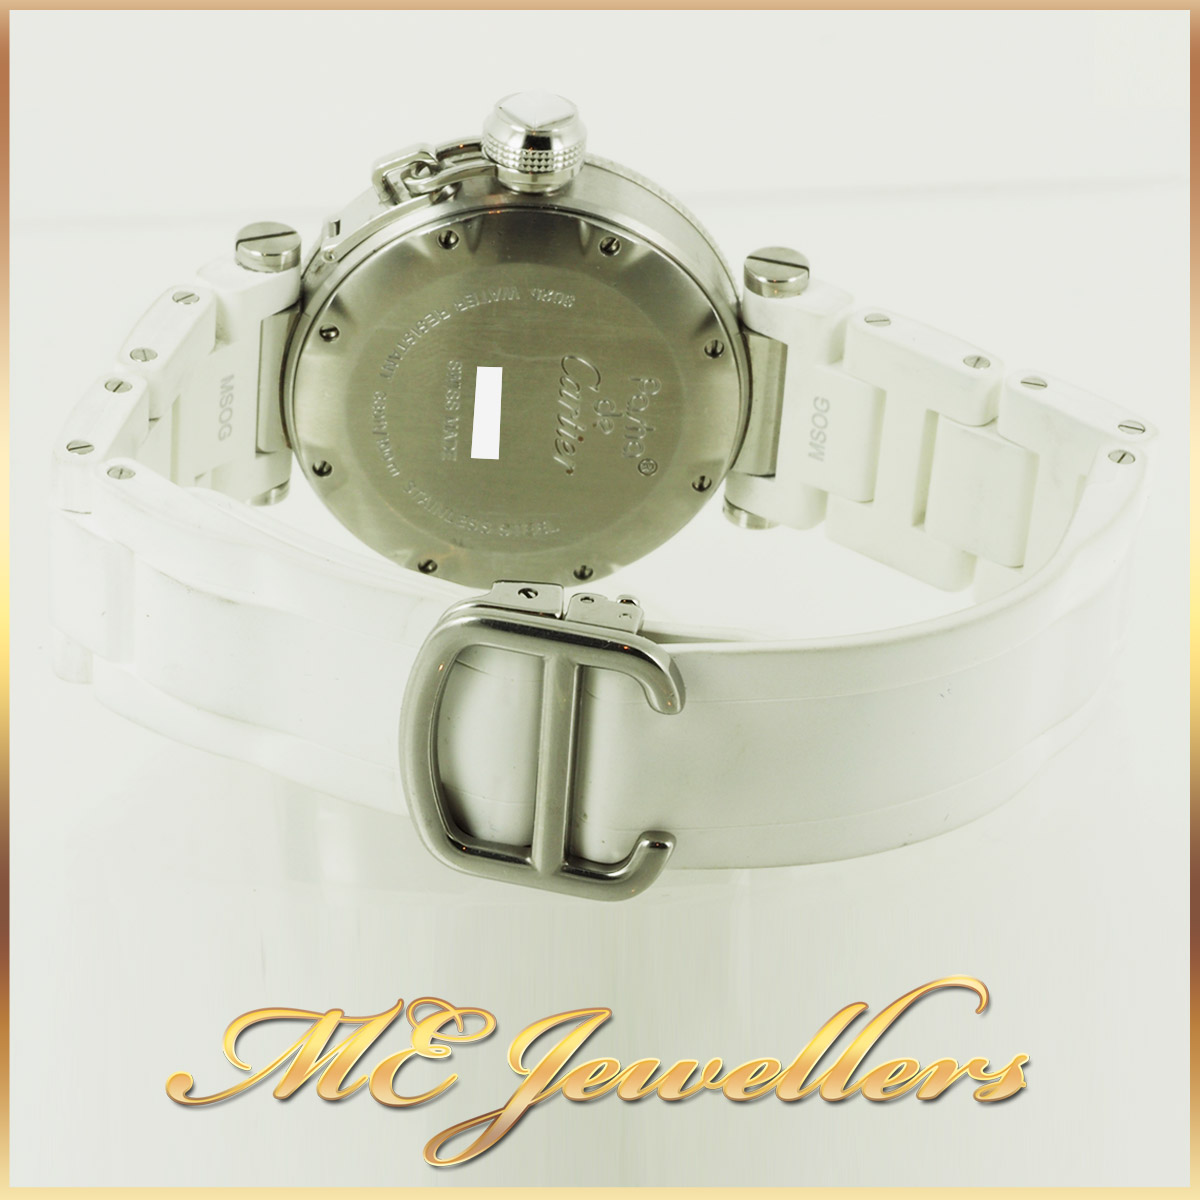 6697_Cartier Pasha De Cartier Watch White Rubber Band (5)